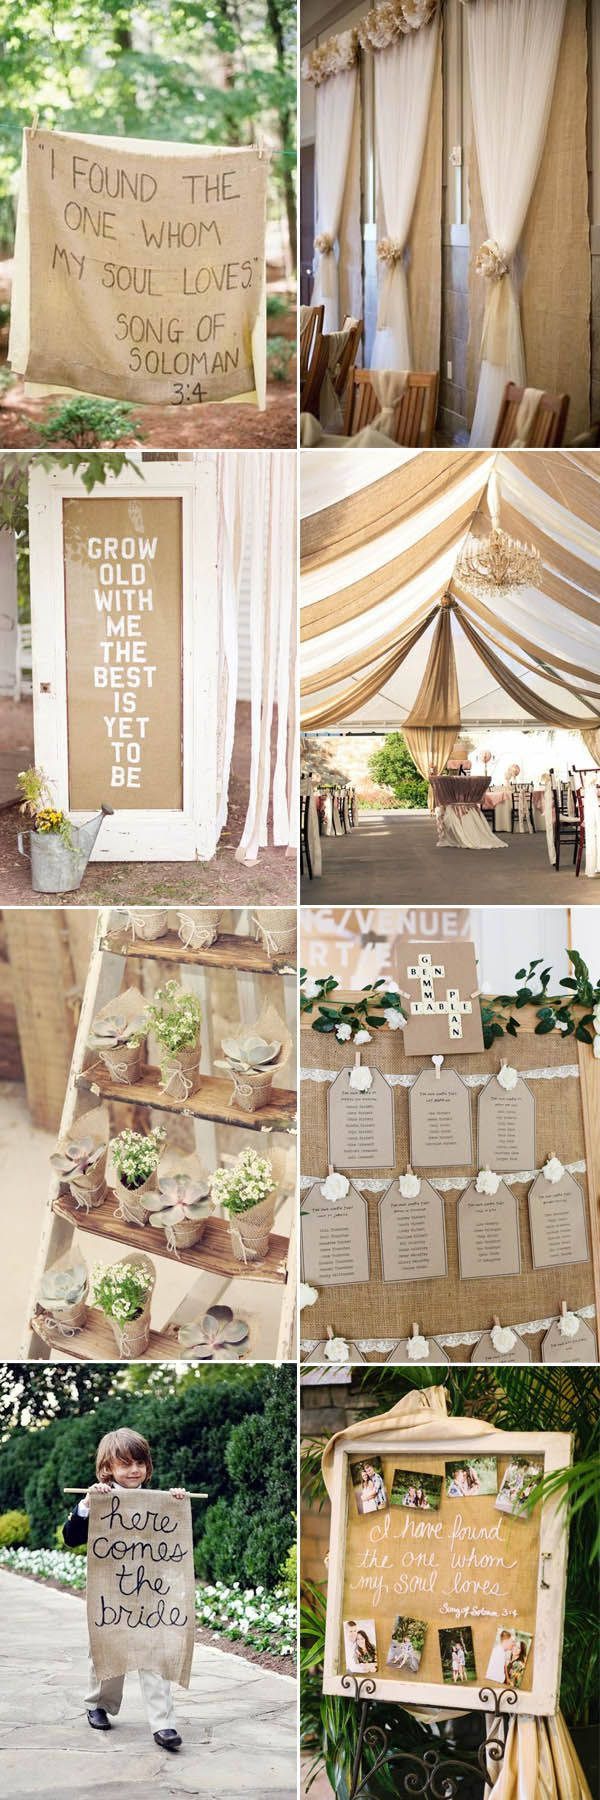 the most complete burlap rustic wedding ideas for your inspiration